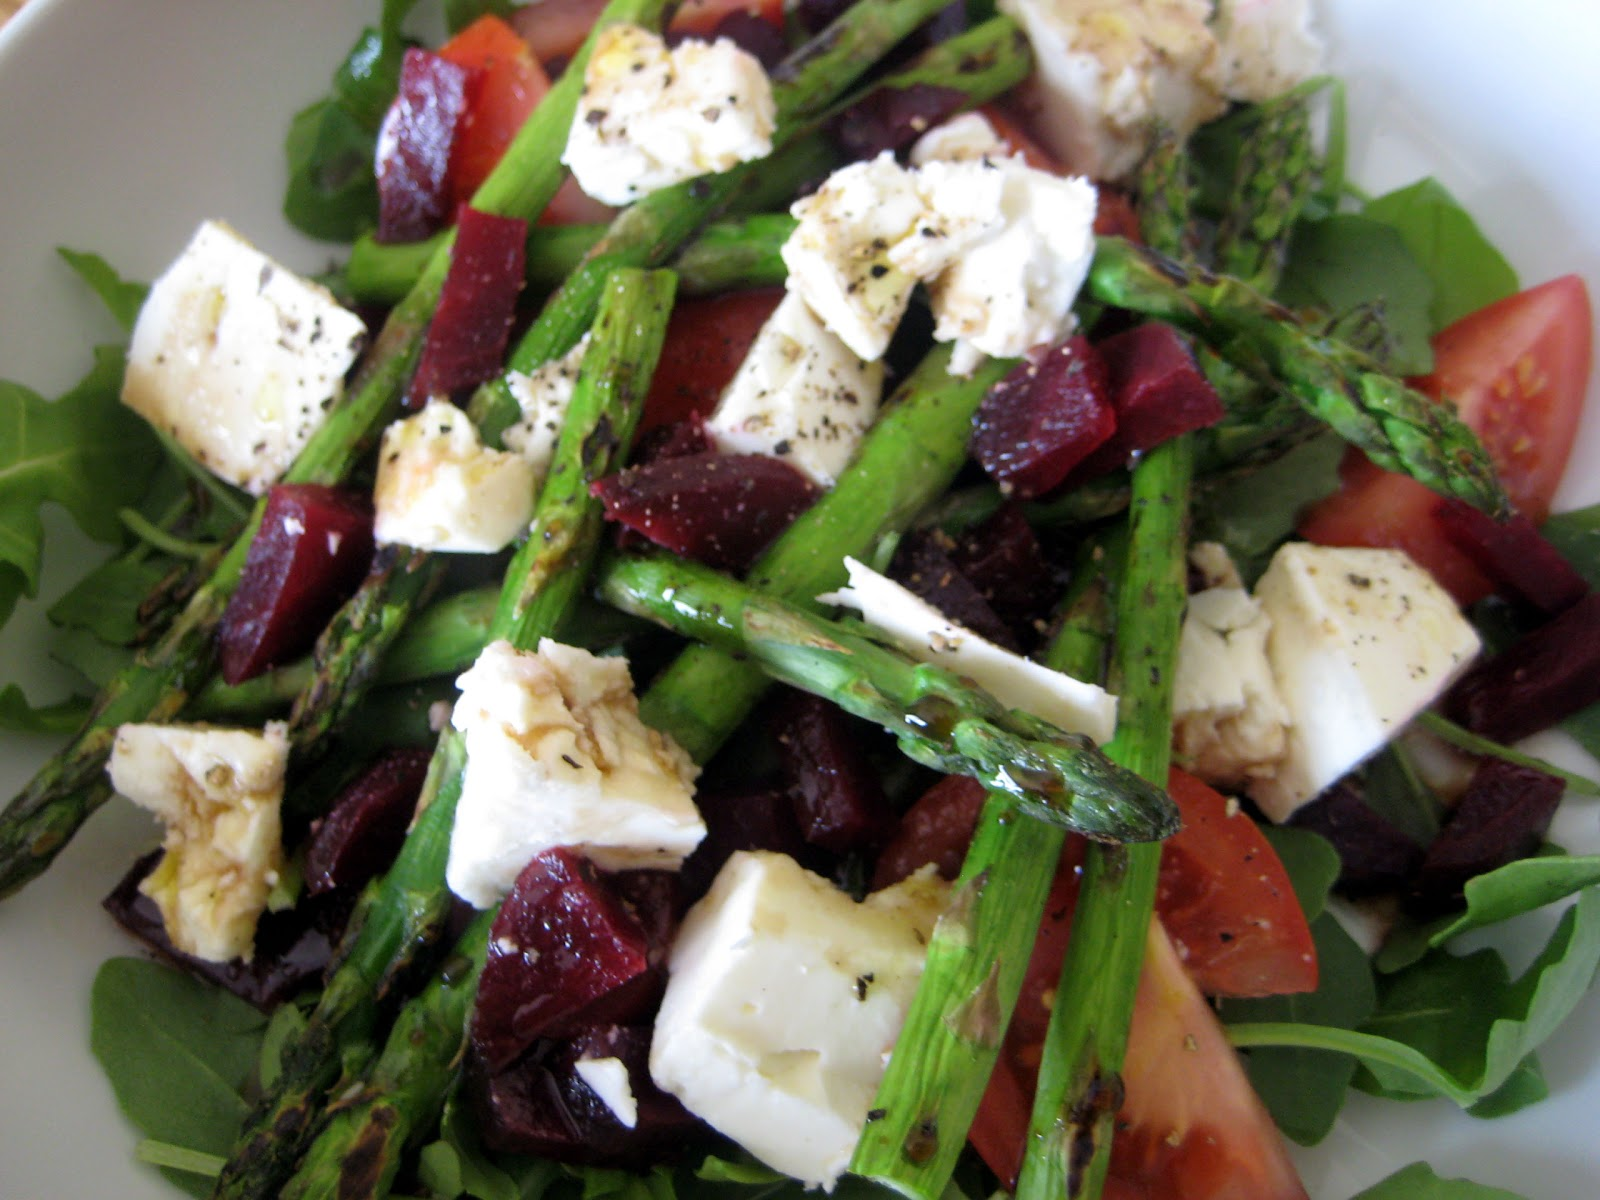 Salad Moroccan Beet Salad With Cinnamon Beetroot And Feta Salad Recipe